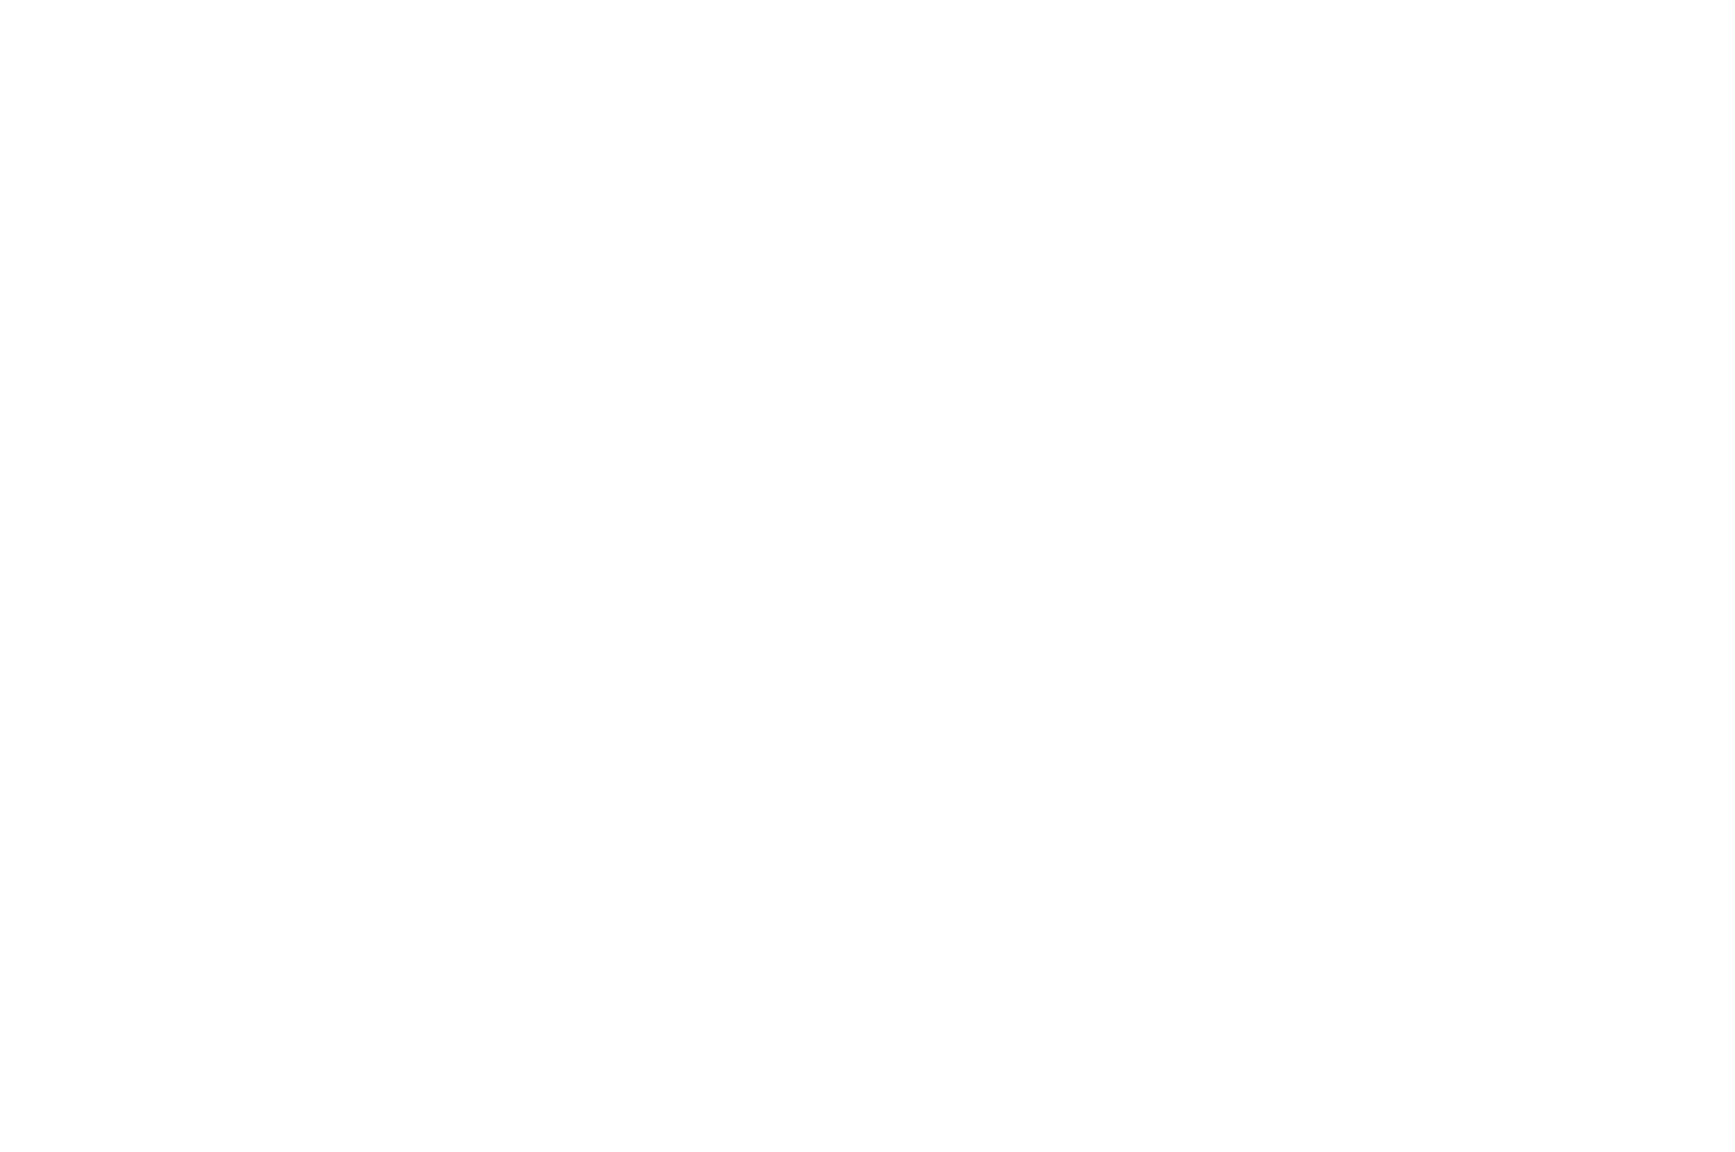 OFFICIAL SELECTION Horror Hullabaloo Film Fest 2017